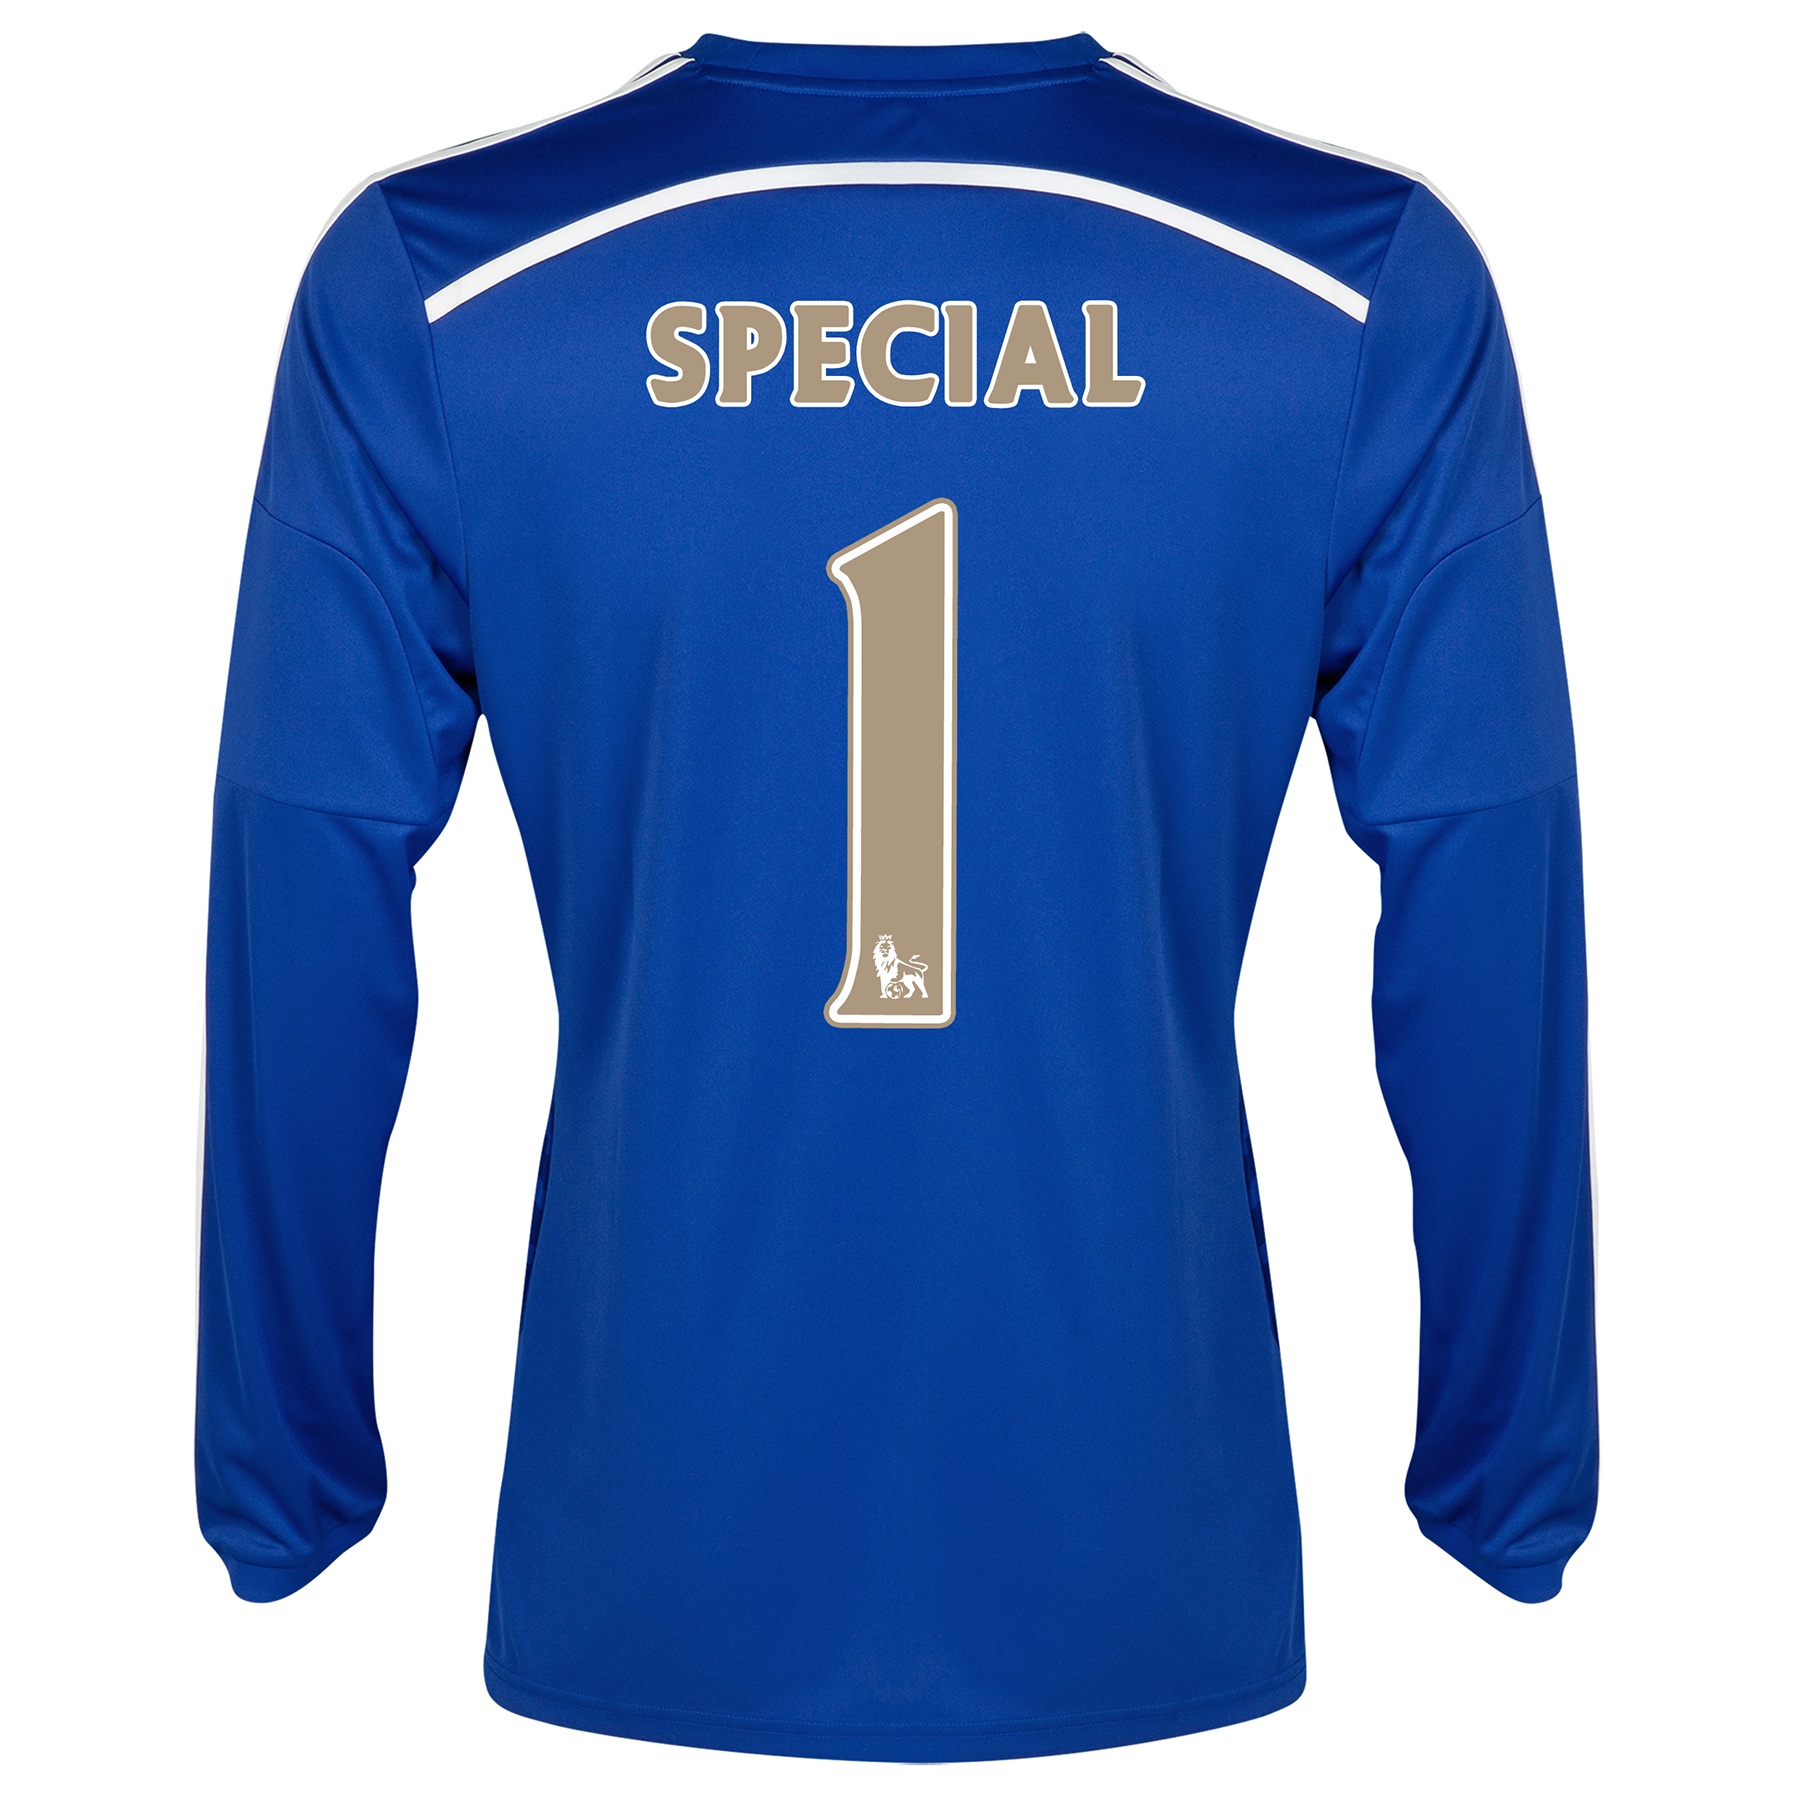 Chelsea Home Shirt 2014/15 - Long Sleeve Blue with Special 1 printing